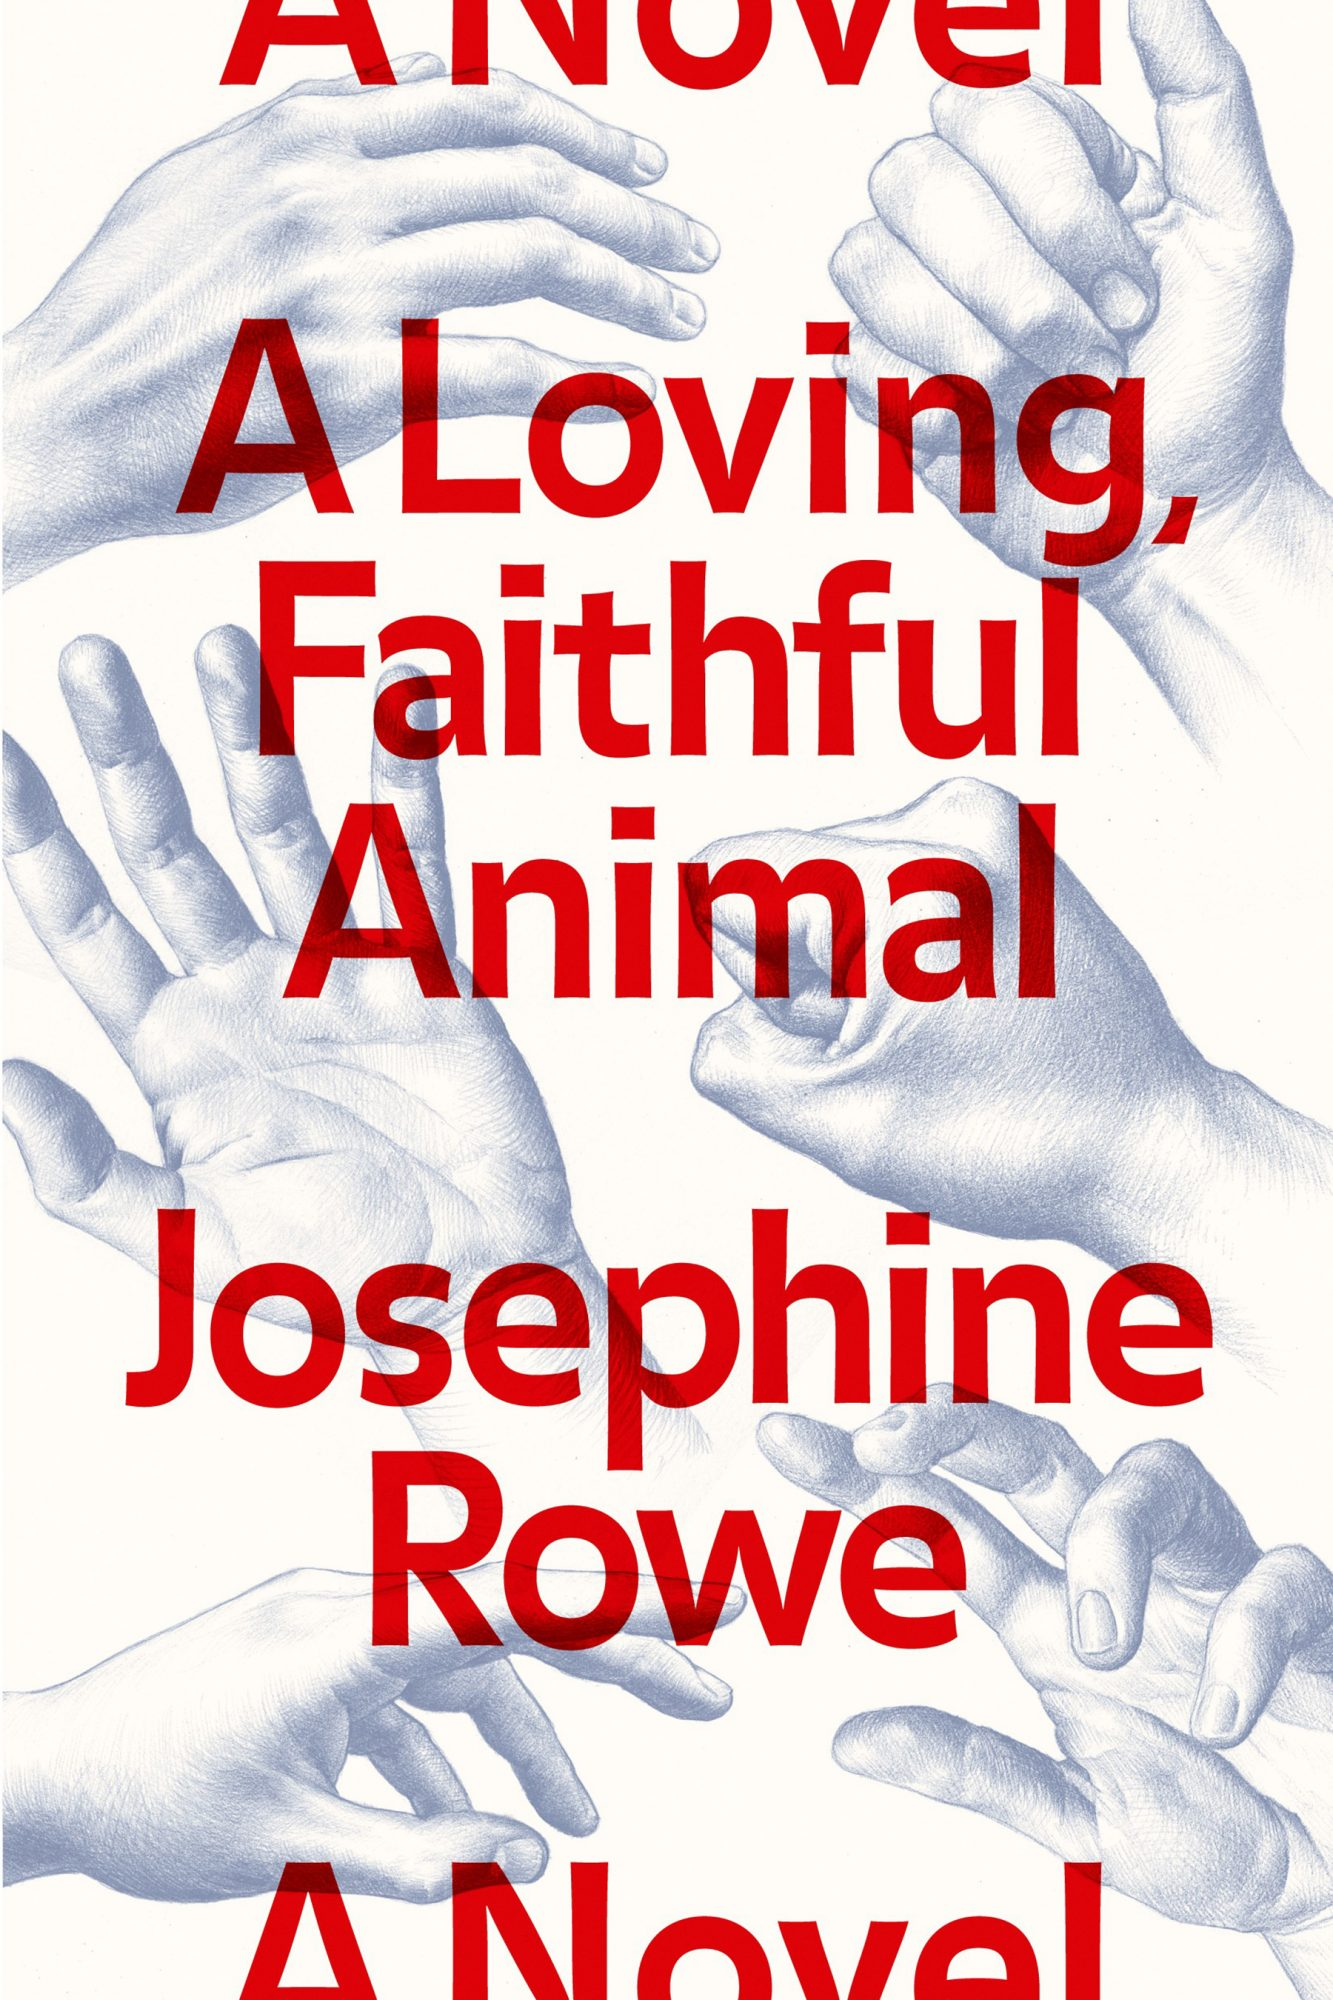 A Loving, Faithful Animal, Josephine Rowe